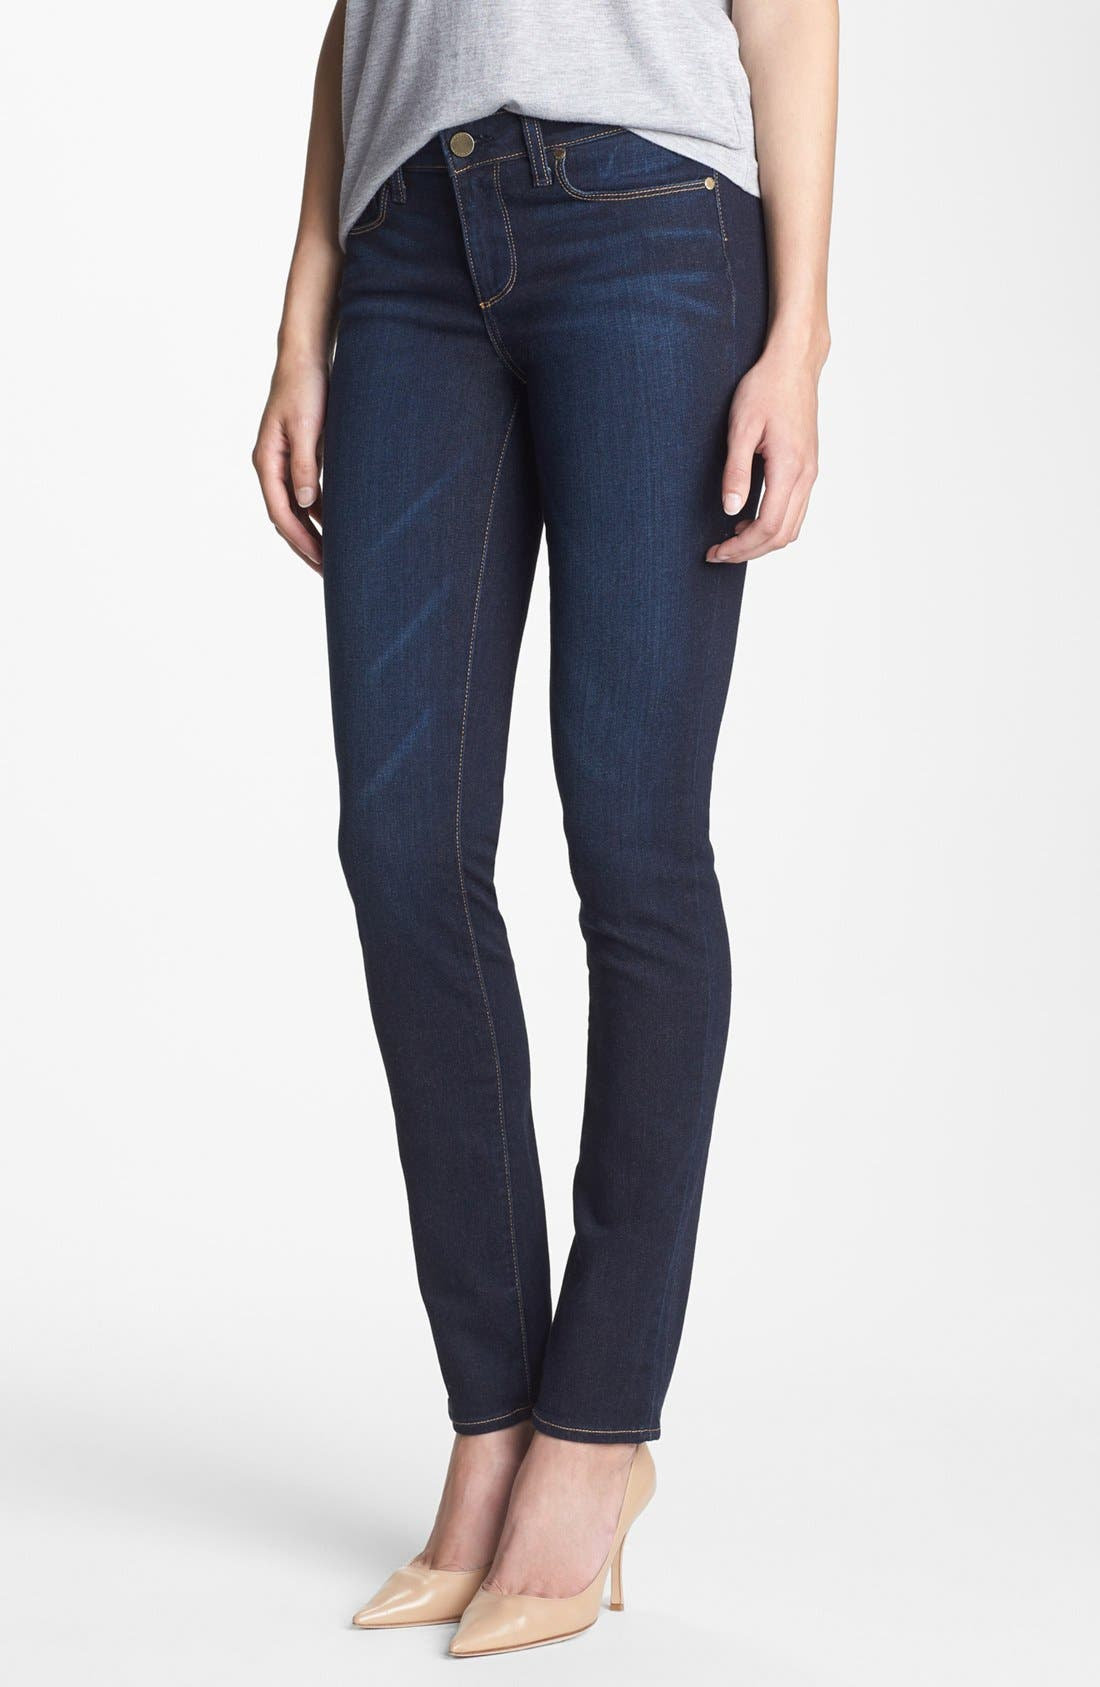 Alternate Image 1 Selected - Paige Denim 'Skyline' Skinny Jeans (Surface)